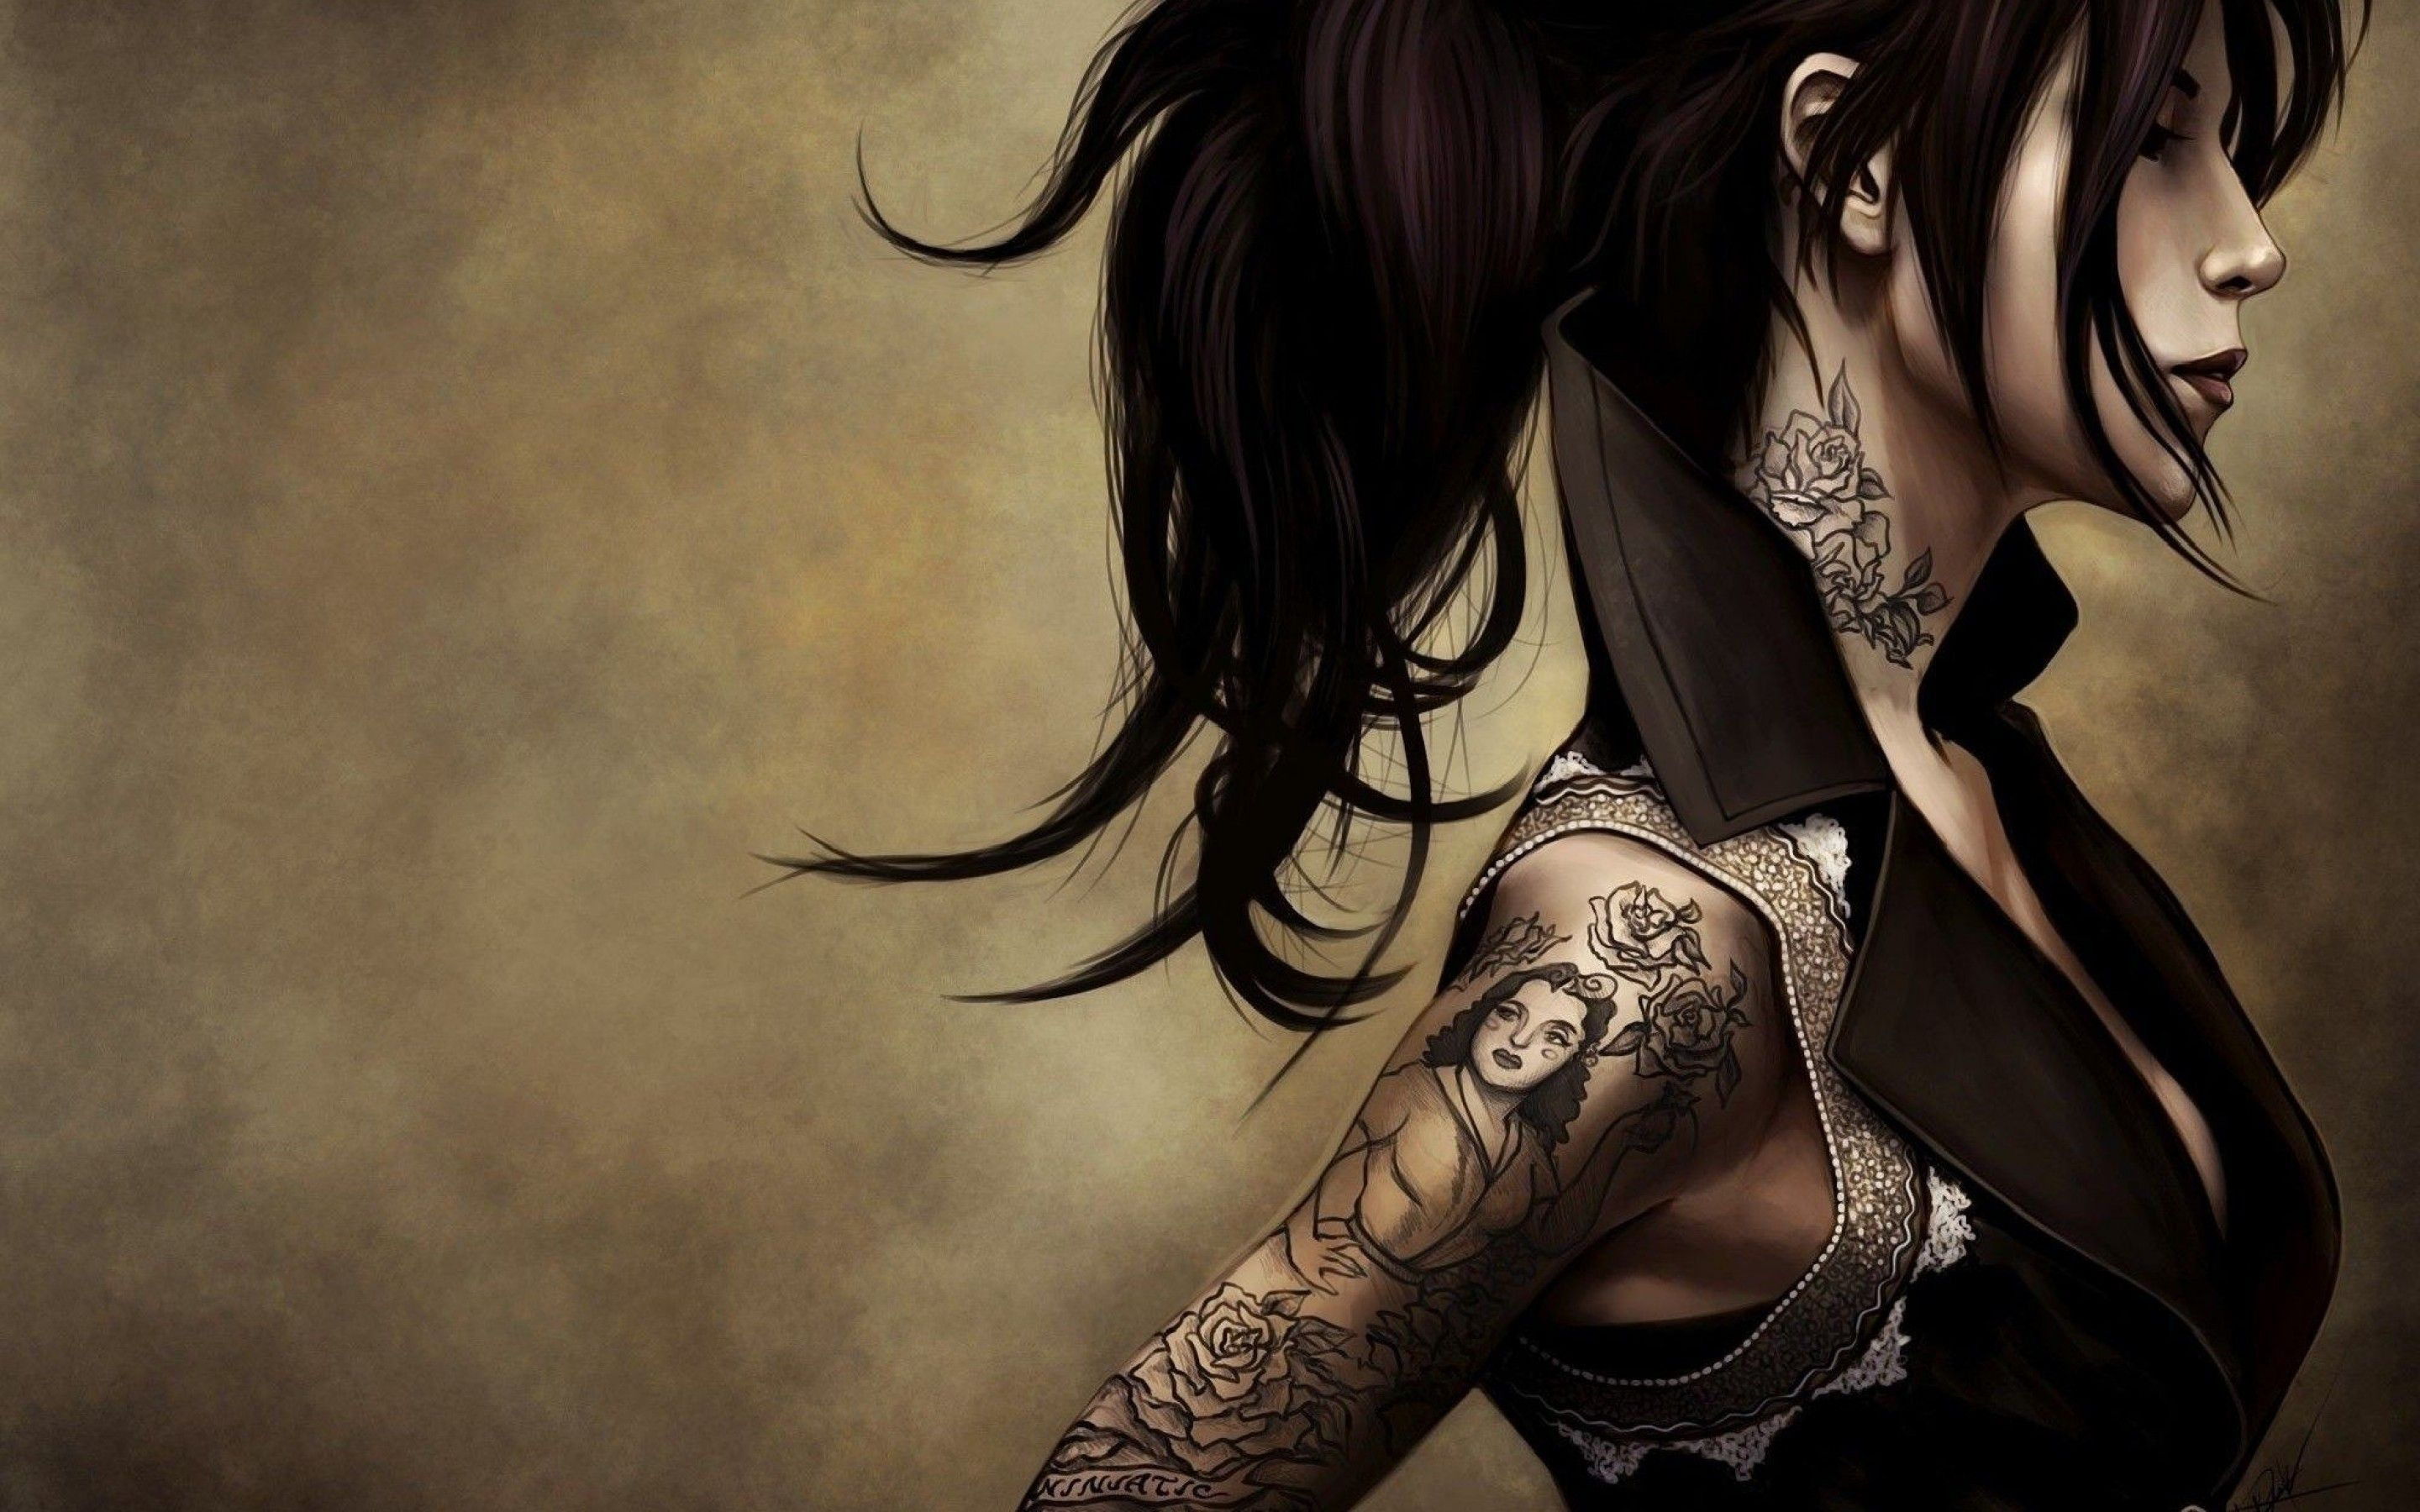 Download Animated Girl Tattoo Art Wallpaper Wide For Desktop .